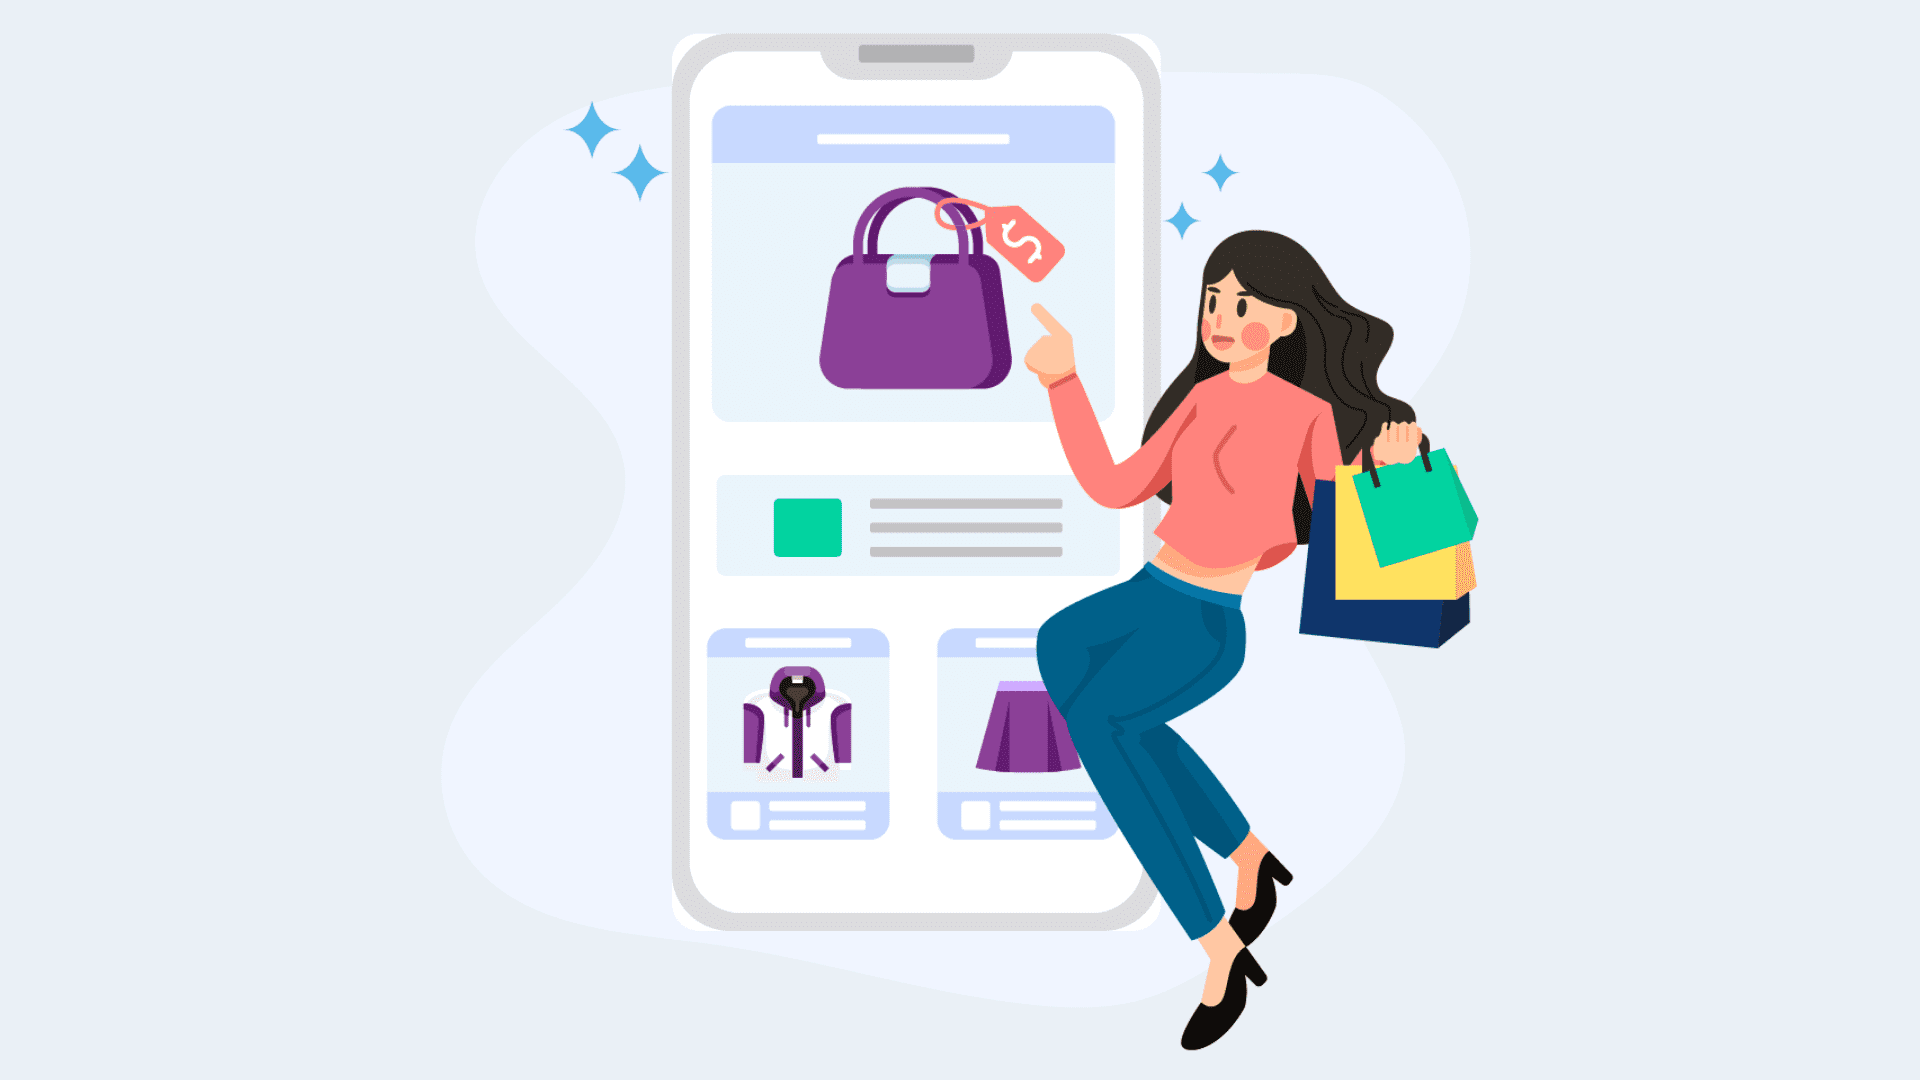 Develop shopping apps